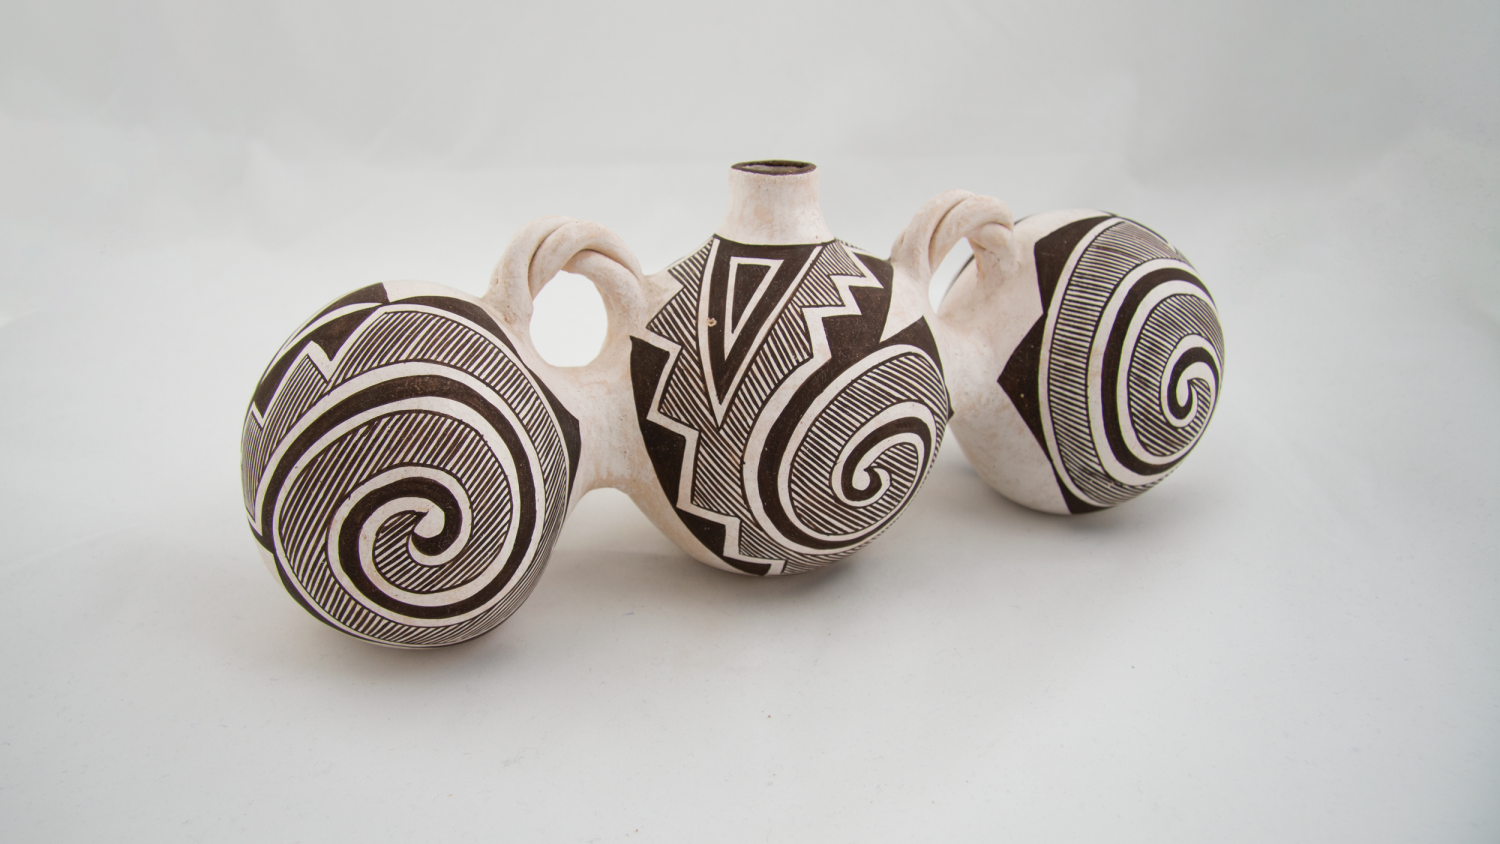 ceramic jar with three linked spherical sections, connected in a straight line, called a triple canteen. It is white with black decoration, and all three sections bear similar designs with concentric circles. A necked opening rises from the center canteen